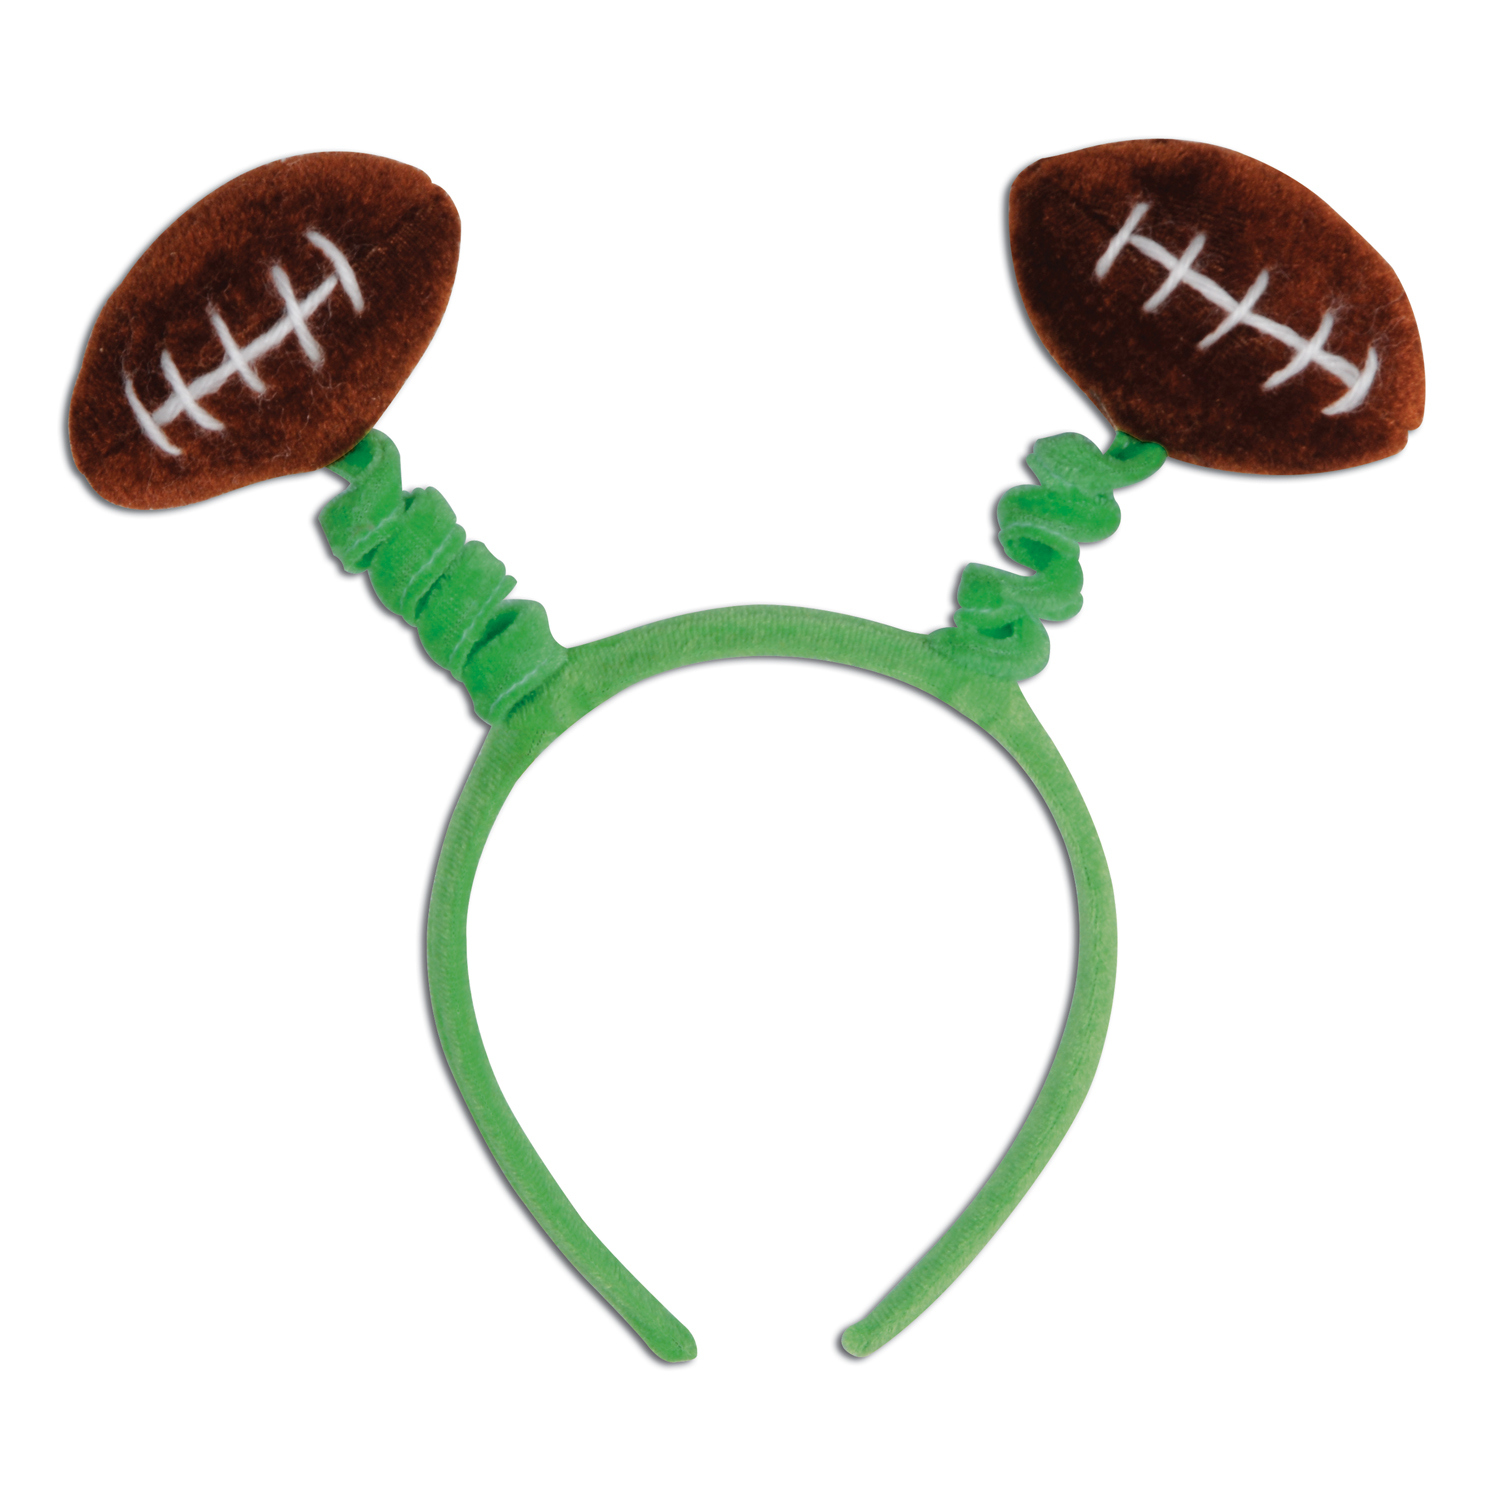 Football Boppers (Pack of 12) Football Boppers, football, big game, party favor, wholesale, inexpensive, bulk